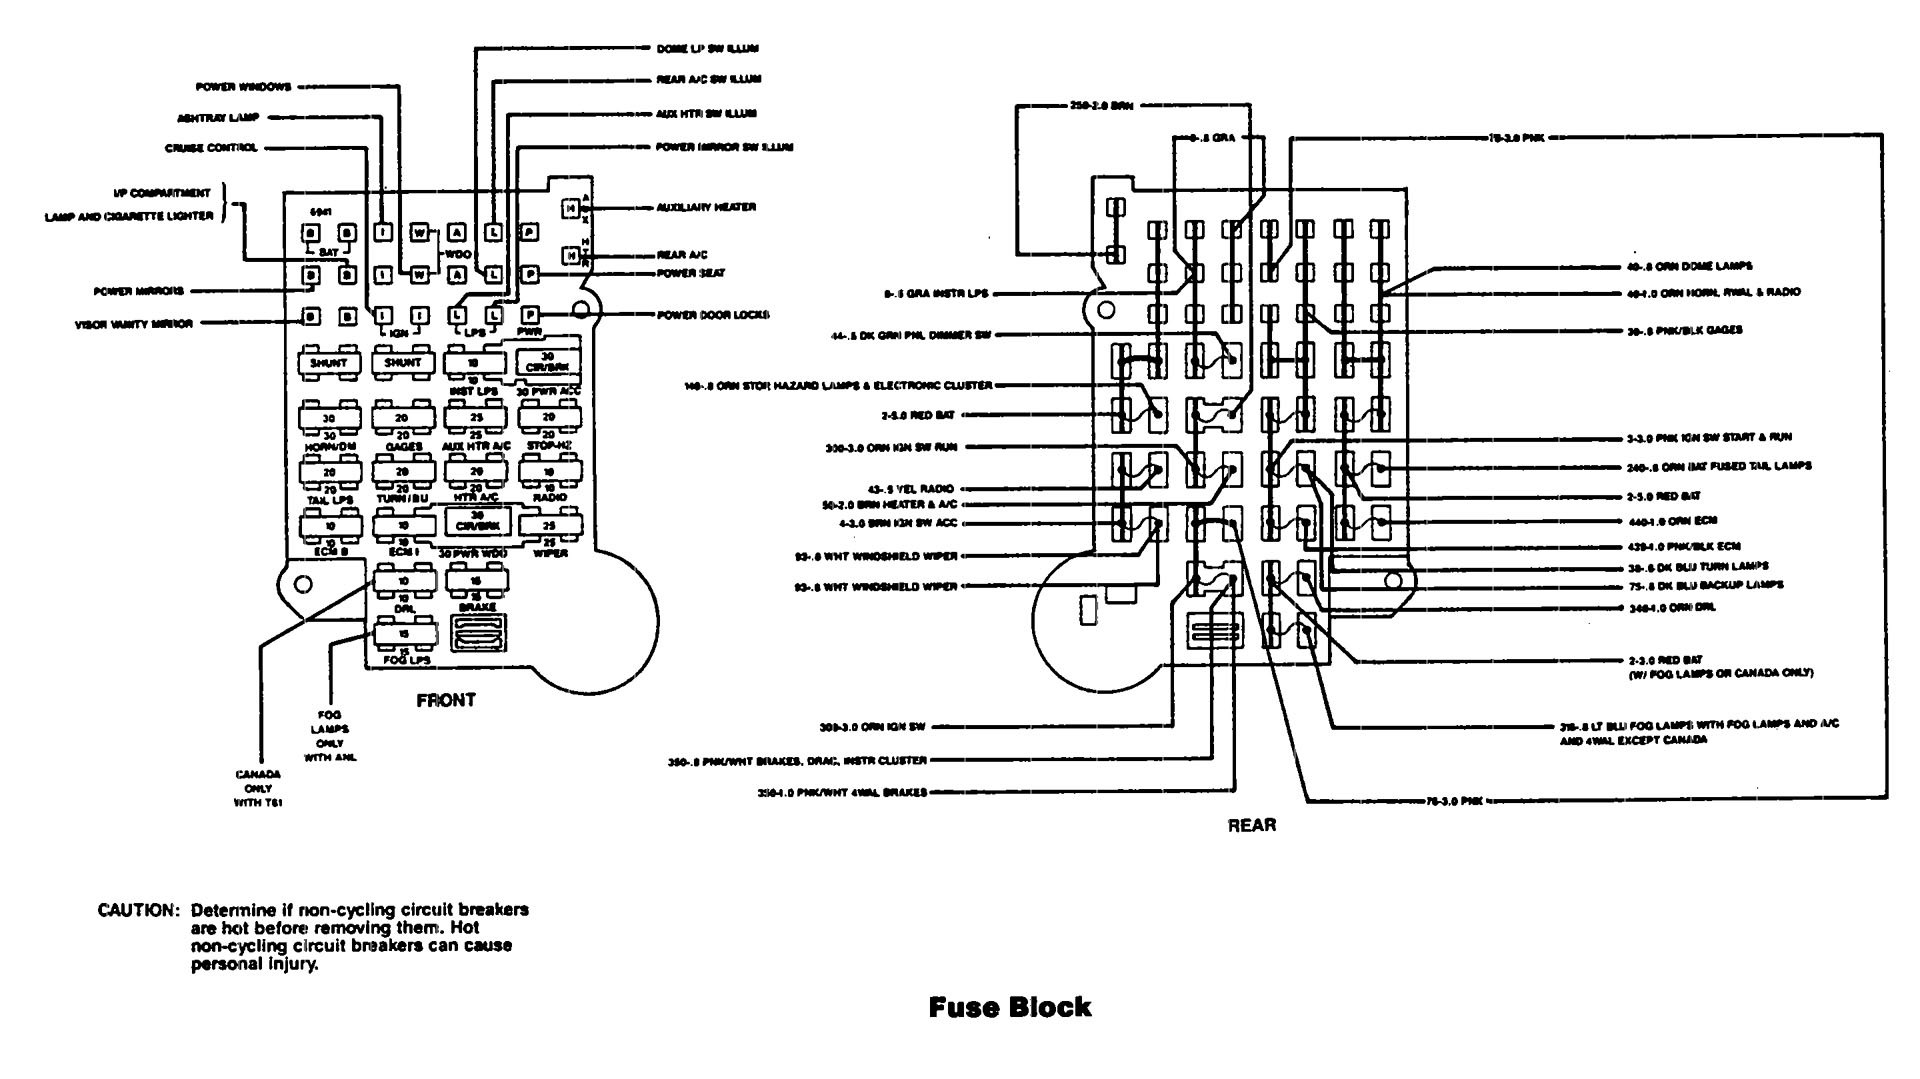 1991 Chevrolet Suburban Fuse Box Wiring Diagram Diagrams Chevy Images Gallery